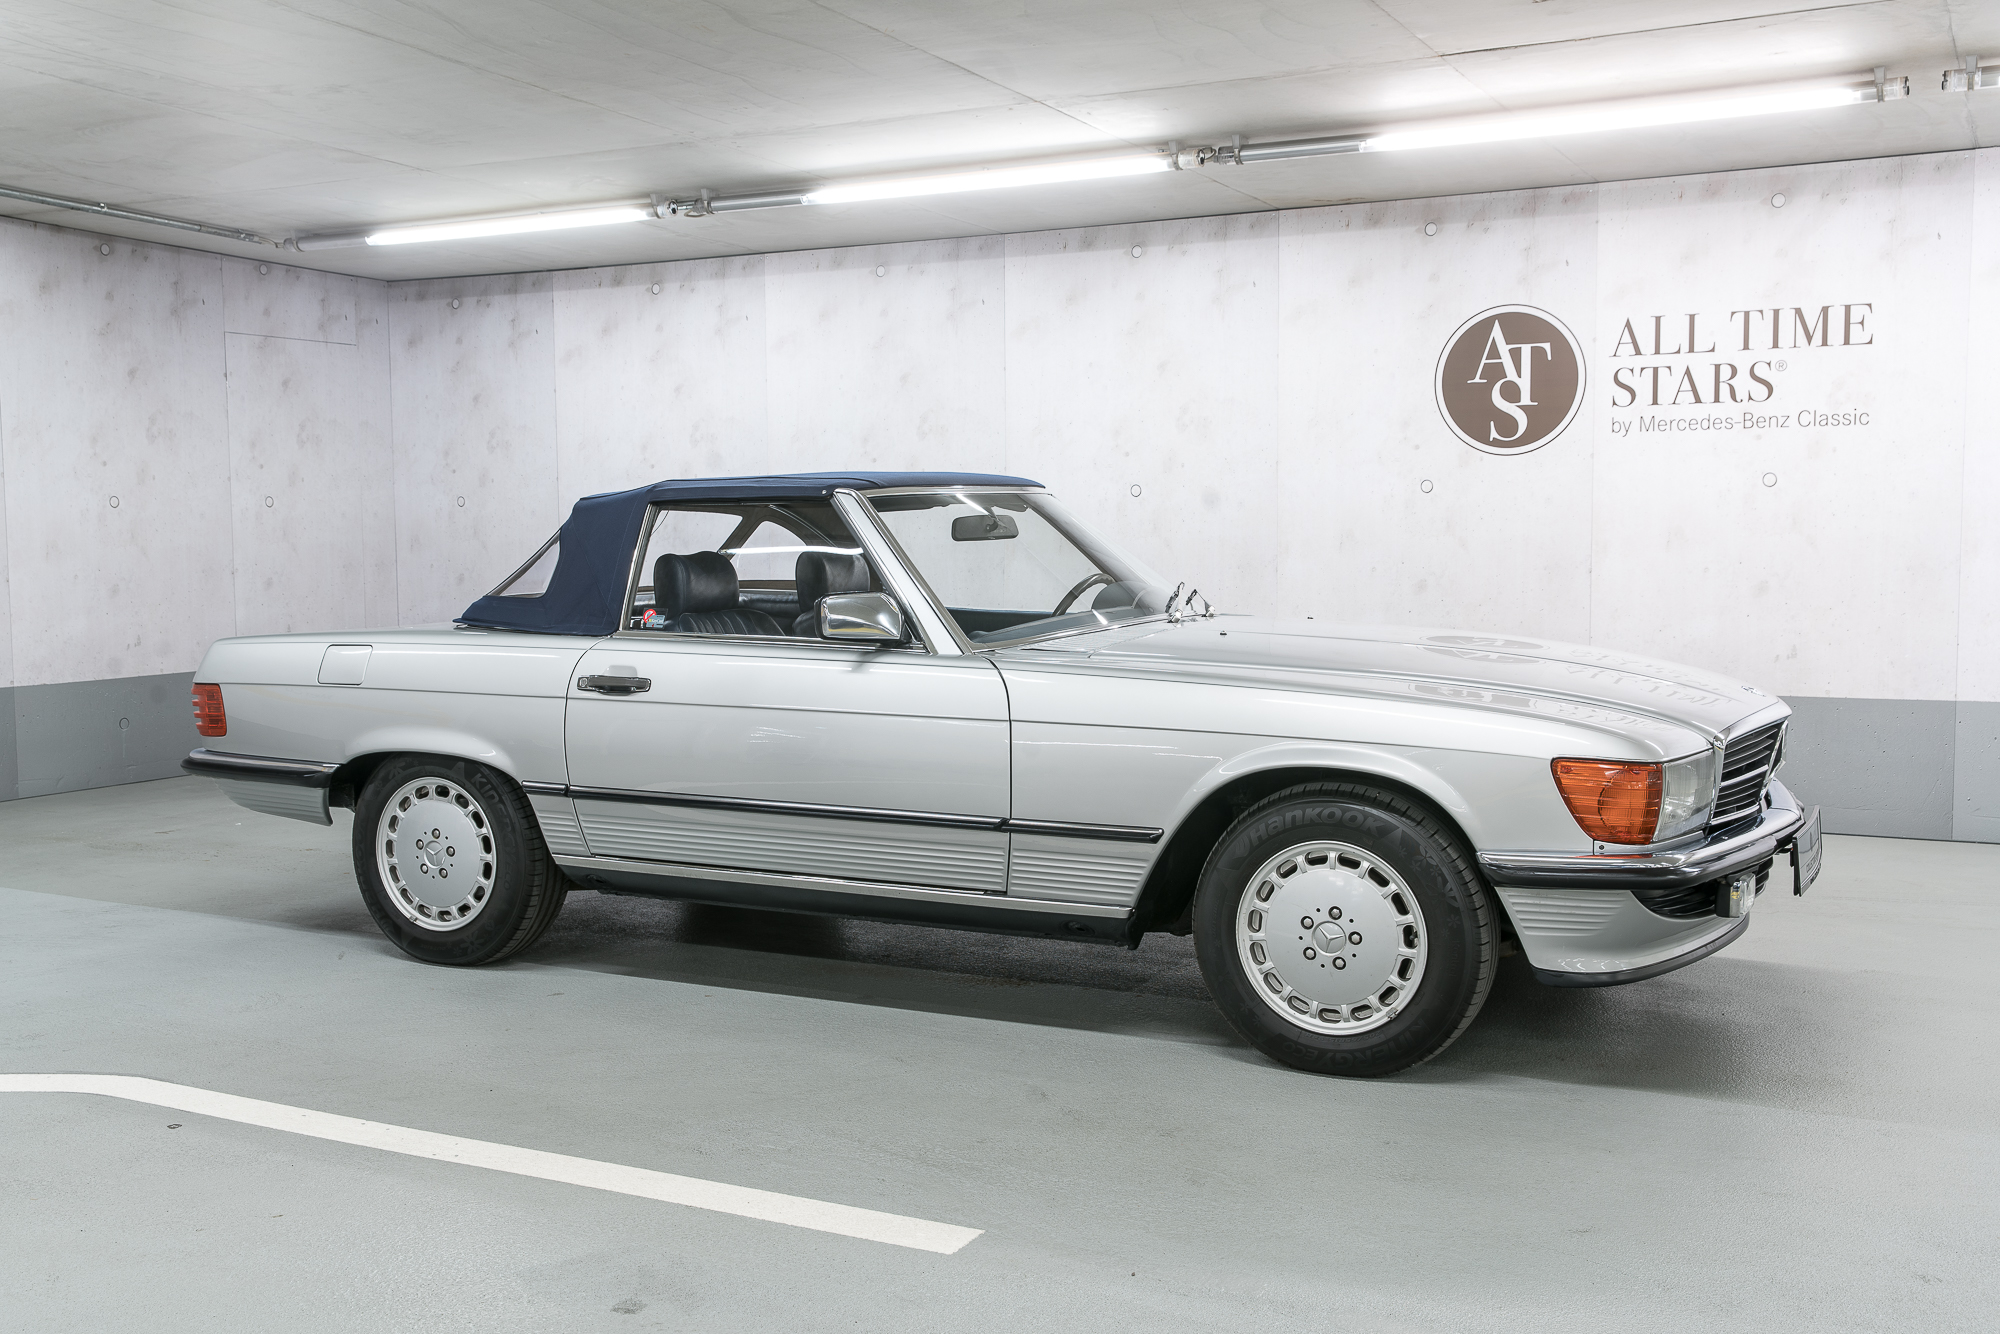 all time stars mercedes benz r107 300 sl. Black Bedroom Furniture Sets. Home Design Ideas